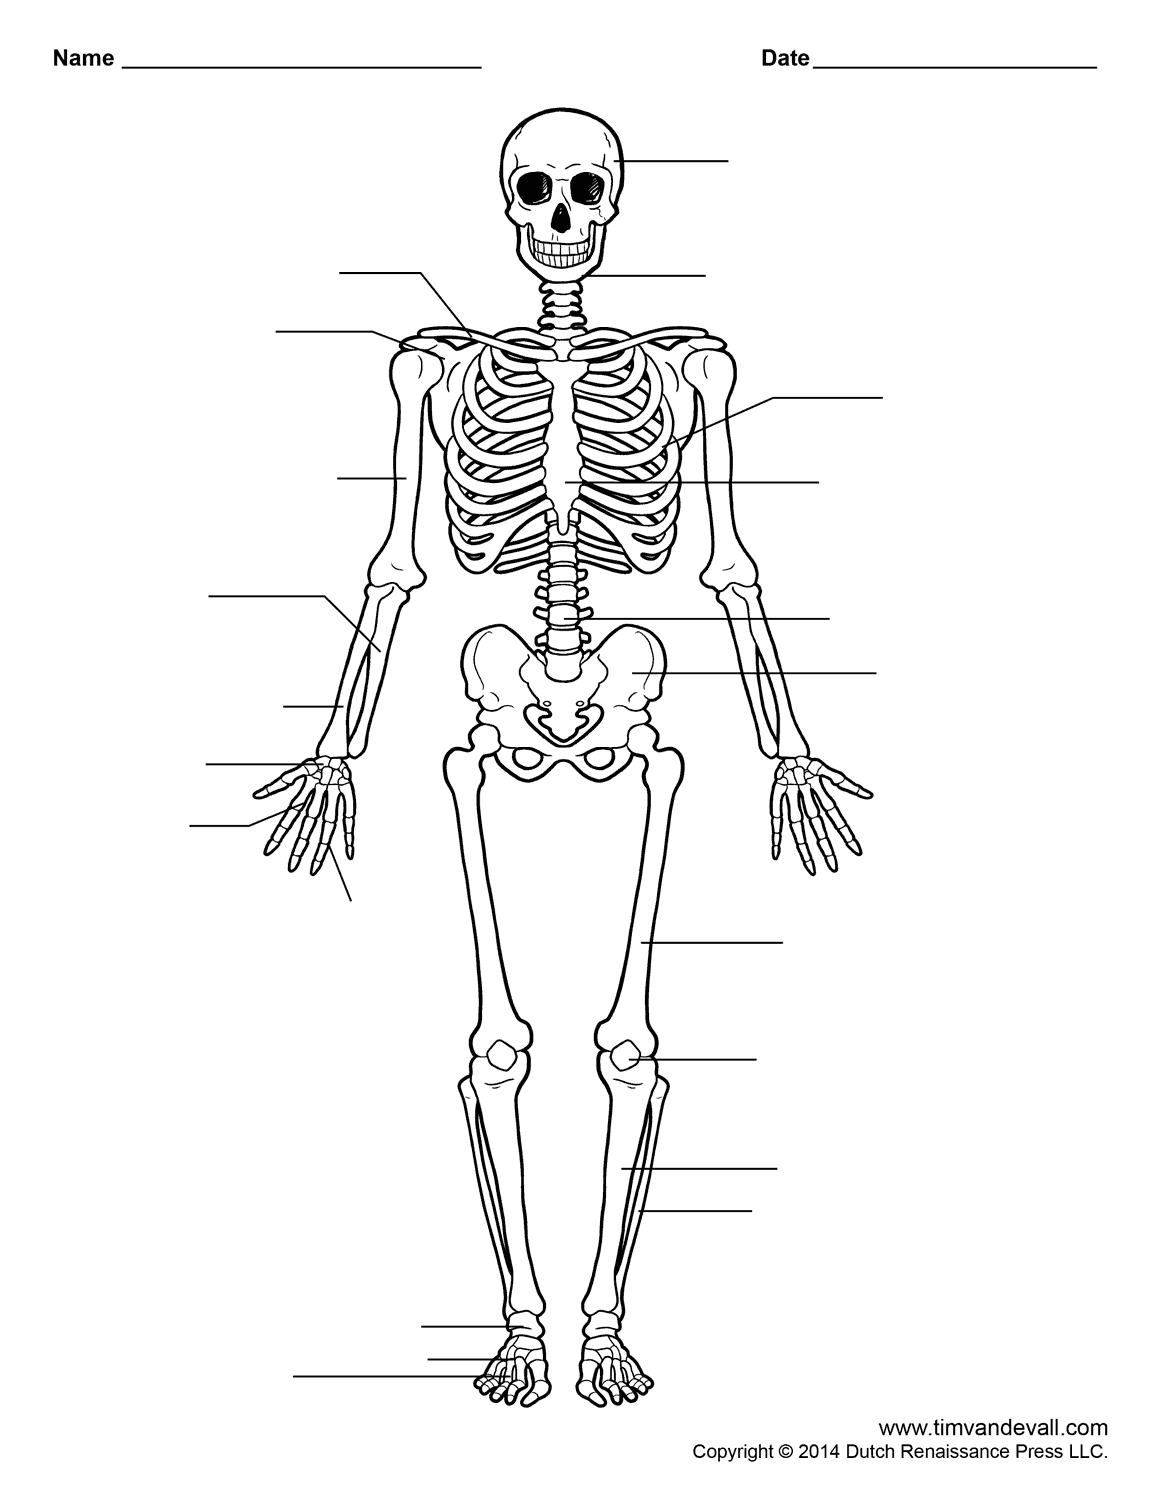 Free Printable Human Skeleton Worksheet For Students And